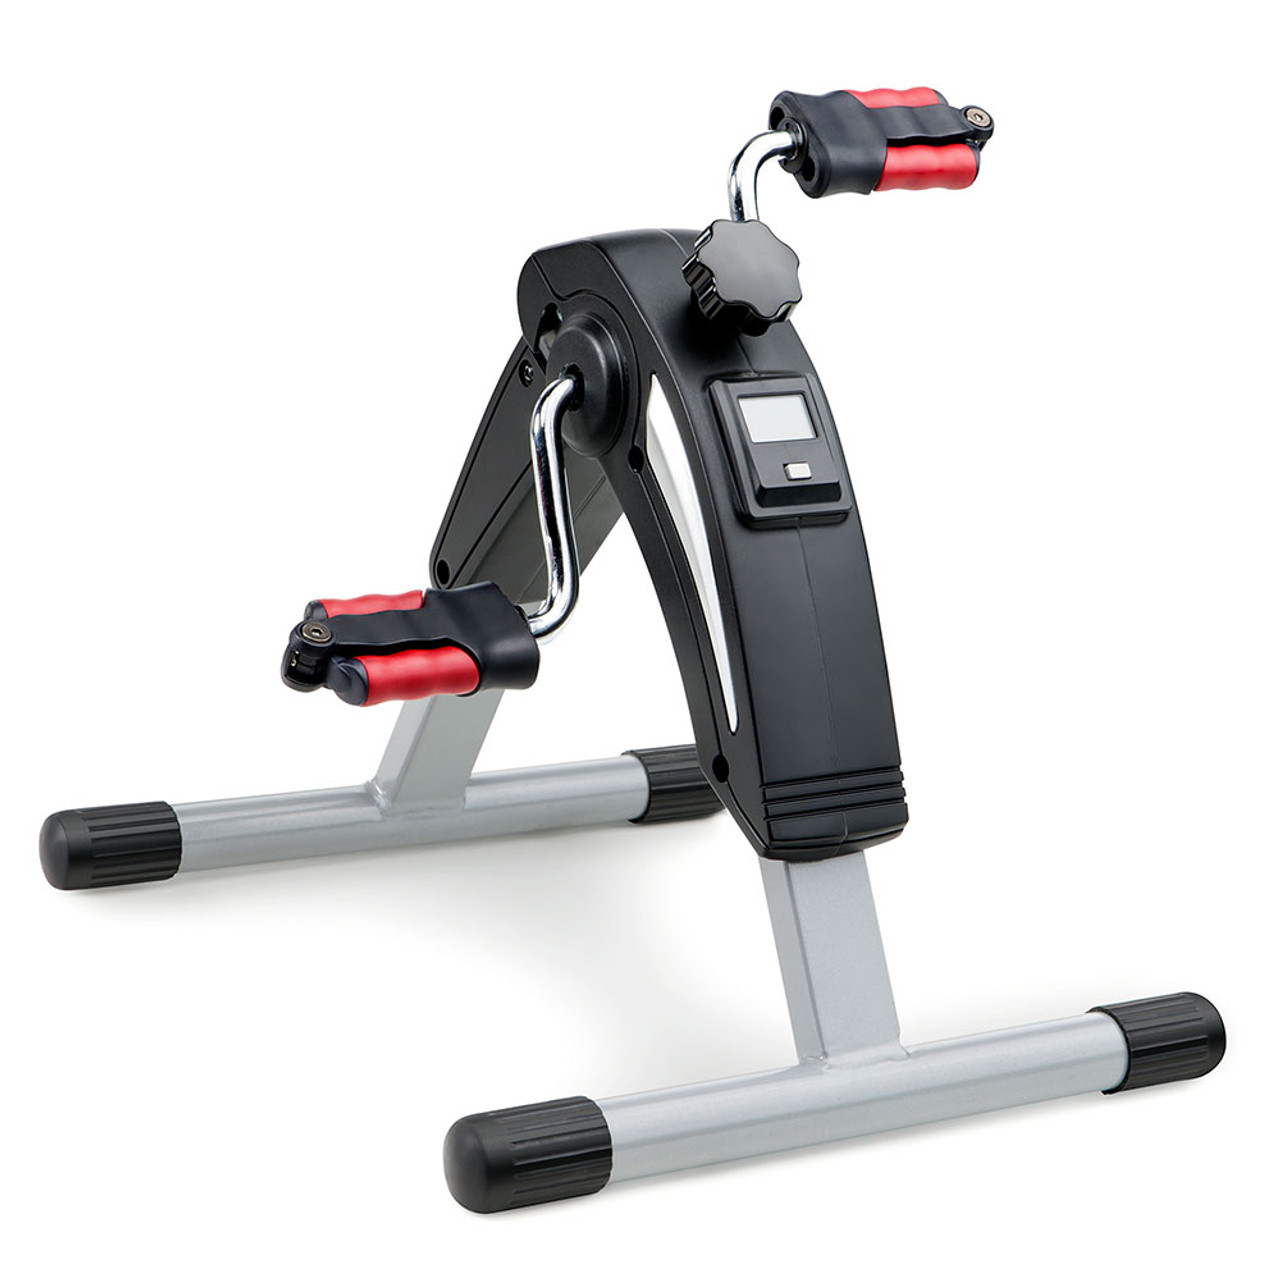 Marcy portable mini magnetic cardio cycle for home gym and office